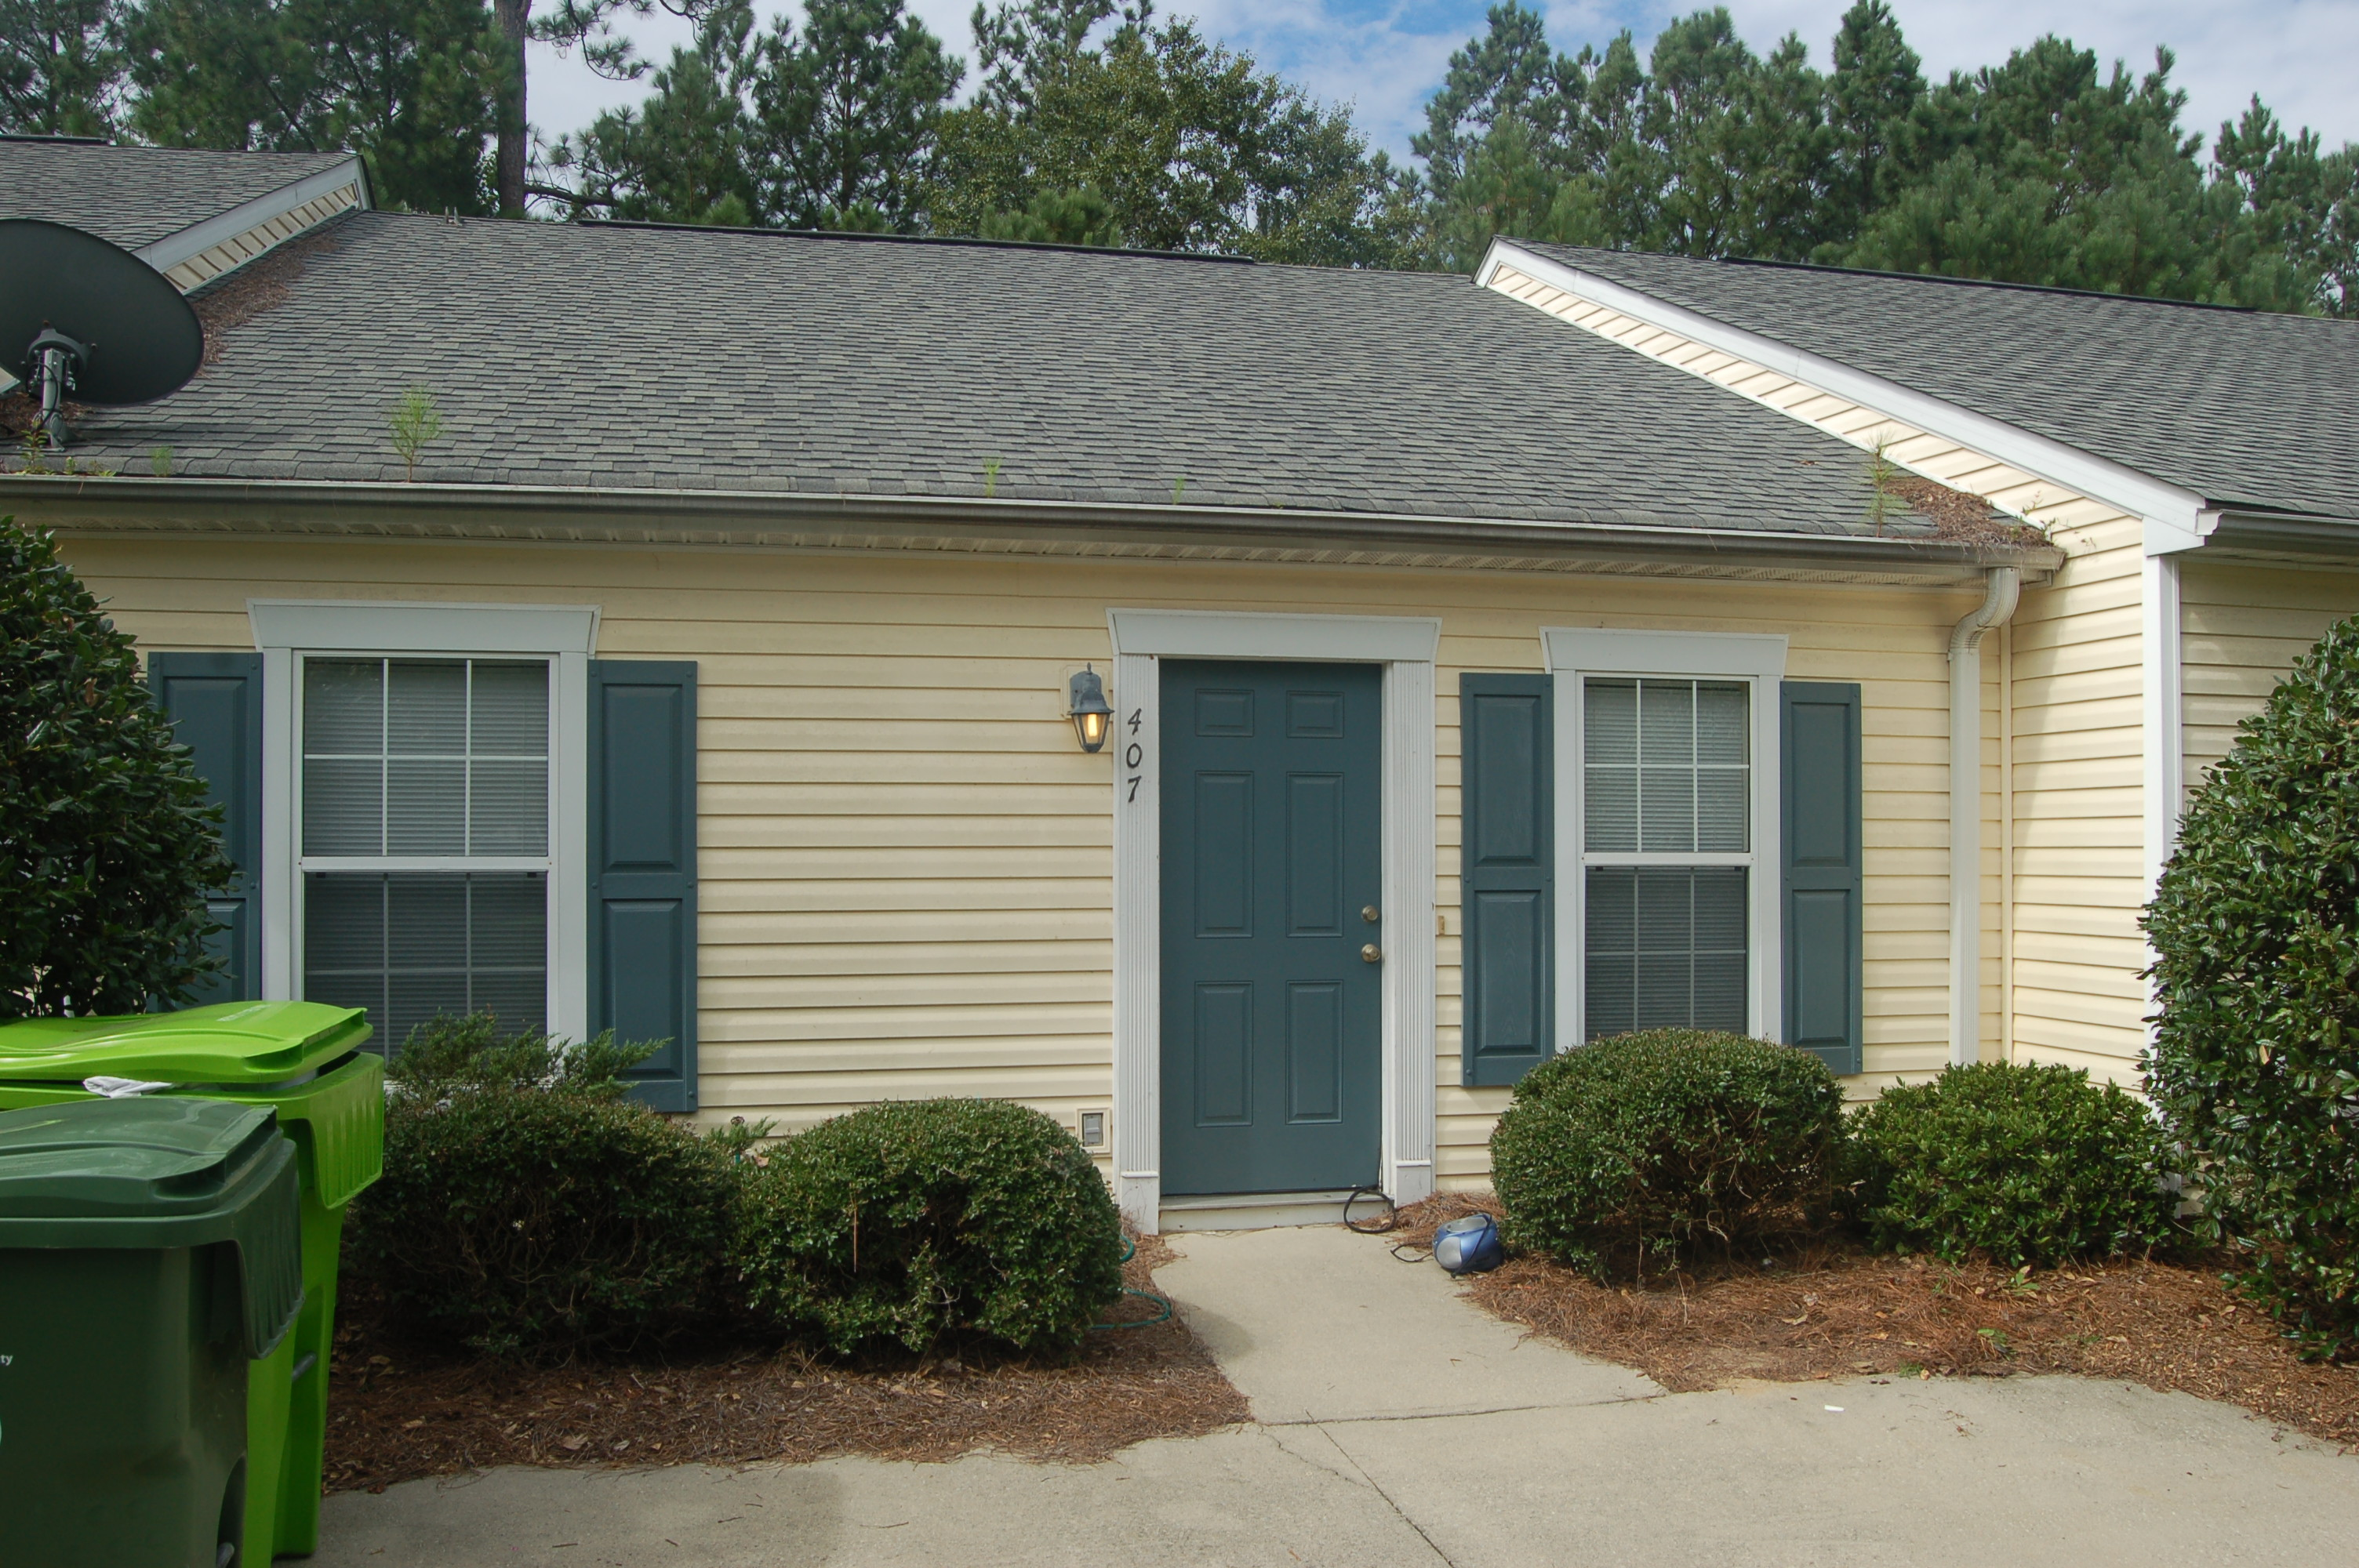 2 bedroom houses for rent in columbia sc - 28 images - 2